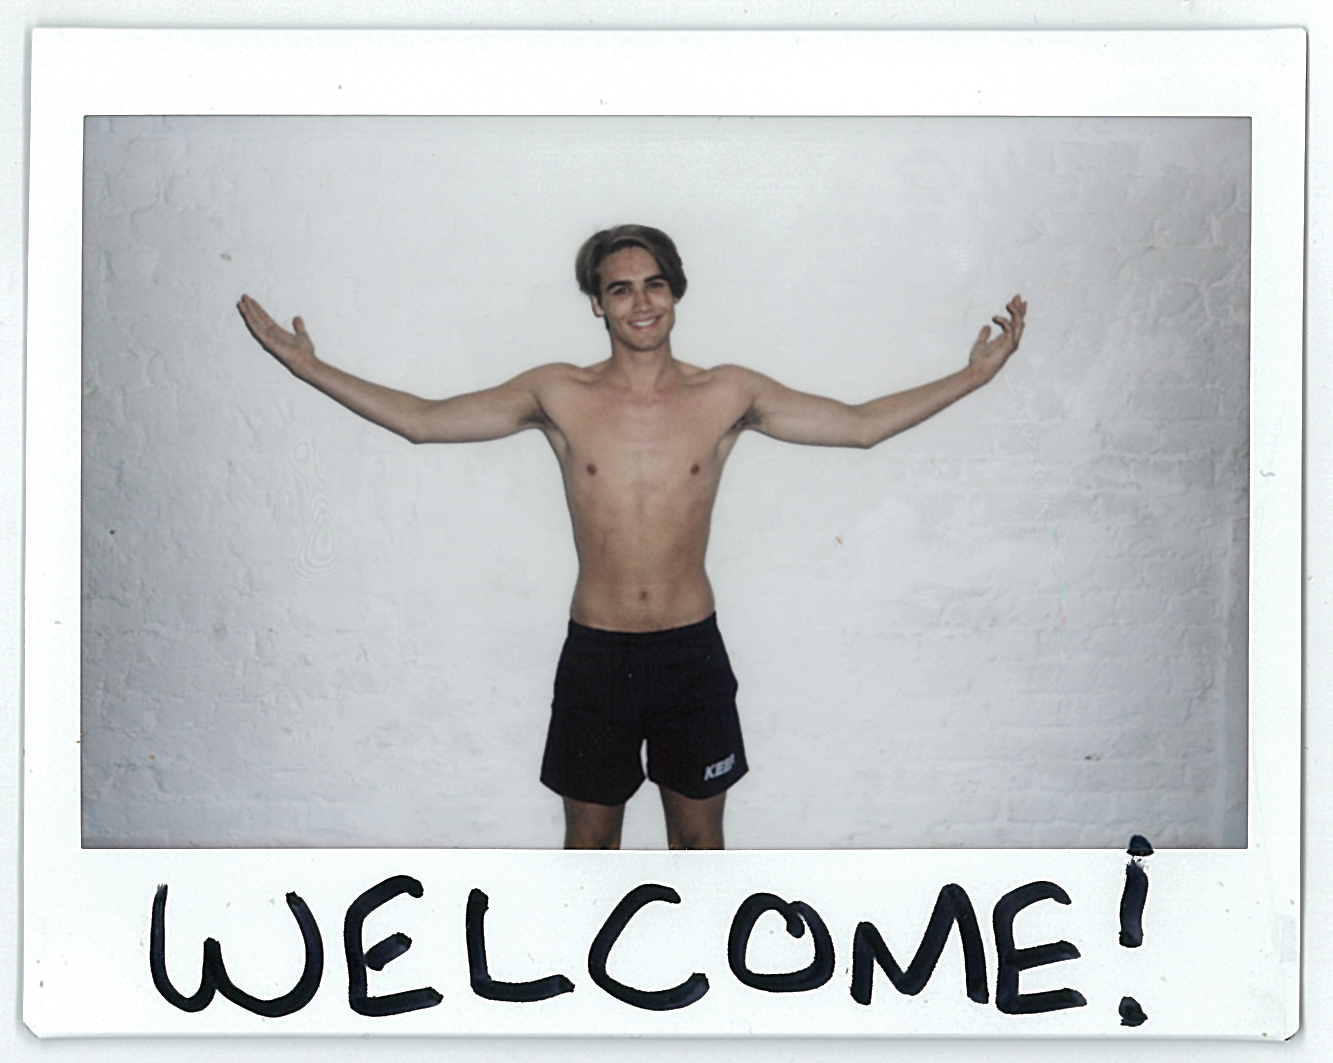 Welcome (Karl)